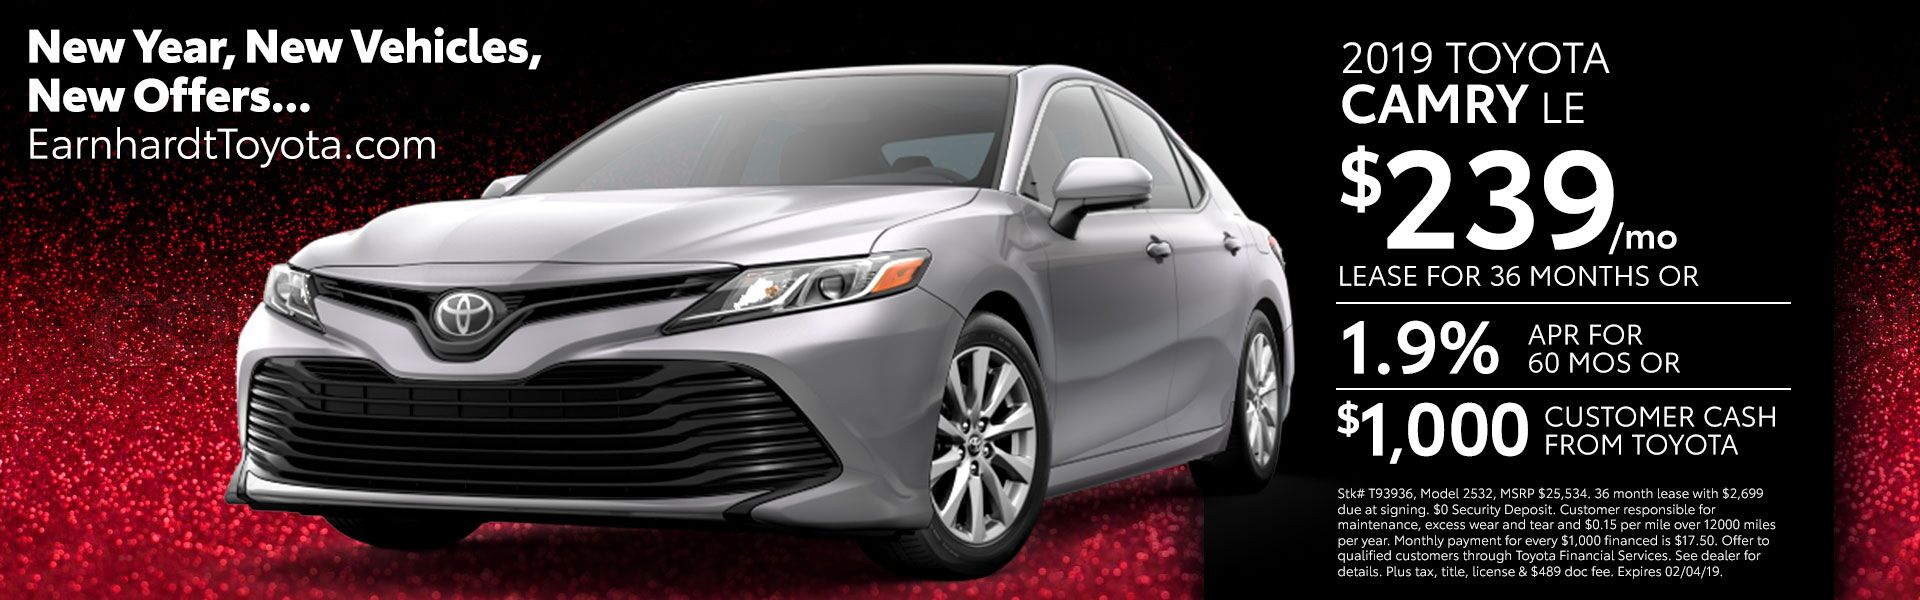 Camry Lease